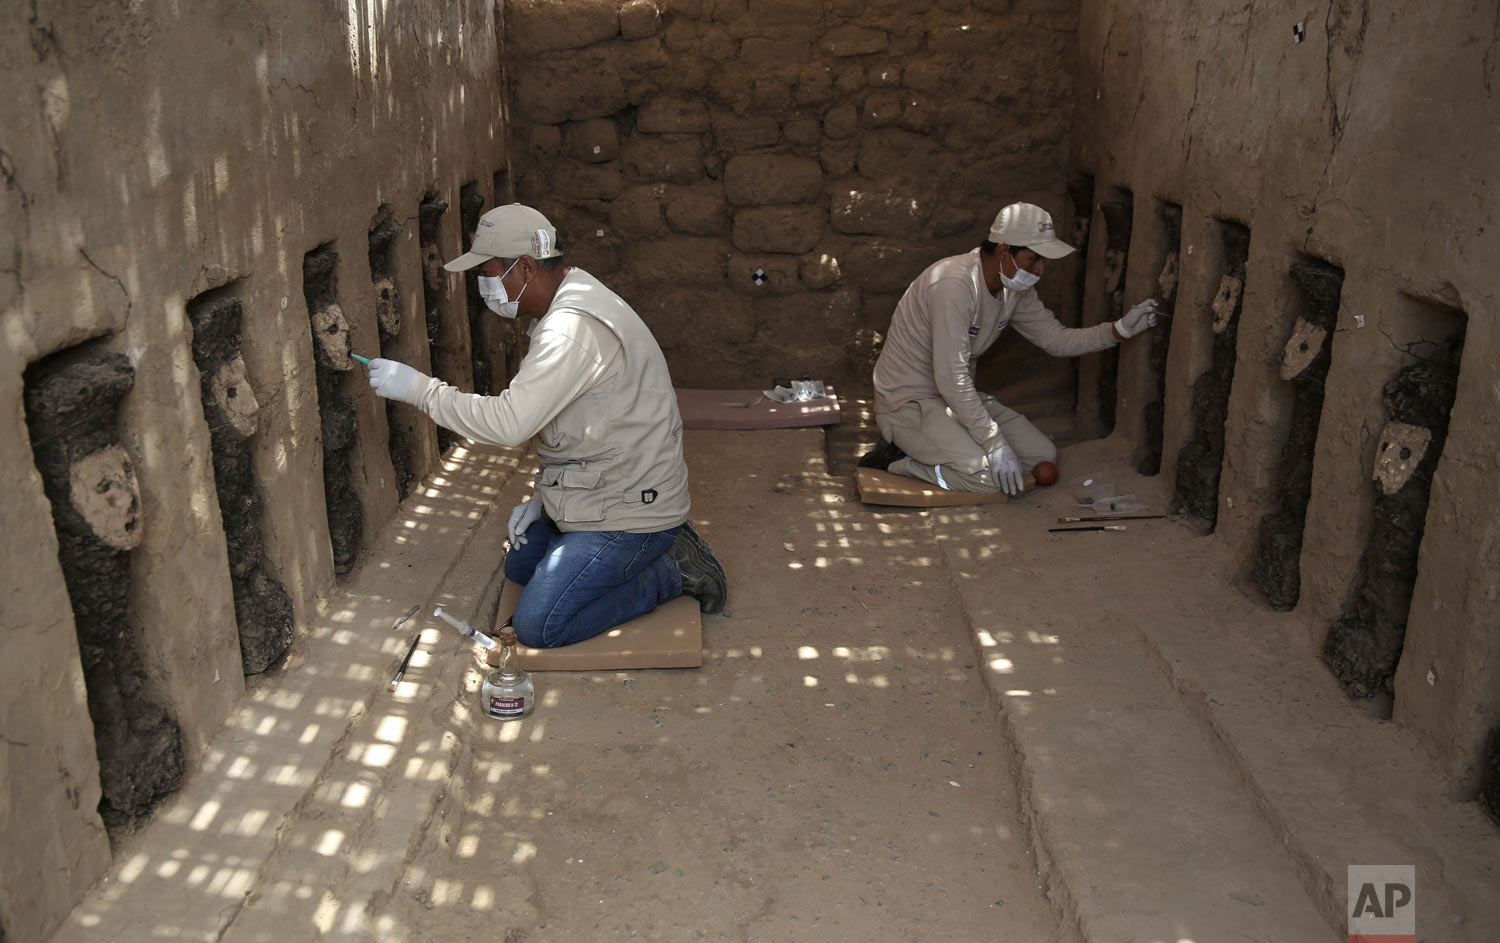 Archaeologists clean the clay masks of wooden idols that protect the entrance to a ceremonial center in the pre-Columbian adobe city of Chan Chan, near Trujillo, Peru, Monday, Oct. 22, 2018. Peru's Ministry of Culture presented the wooden idols as part of a series of important archaeological discoveries in the Chan Chan citadel belonging to the ancient Chimu empire who were conquered by the Incas in the late 15th century. (AP Photo/Martin Mejia)